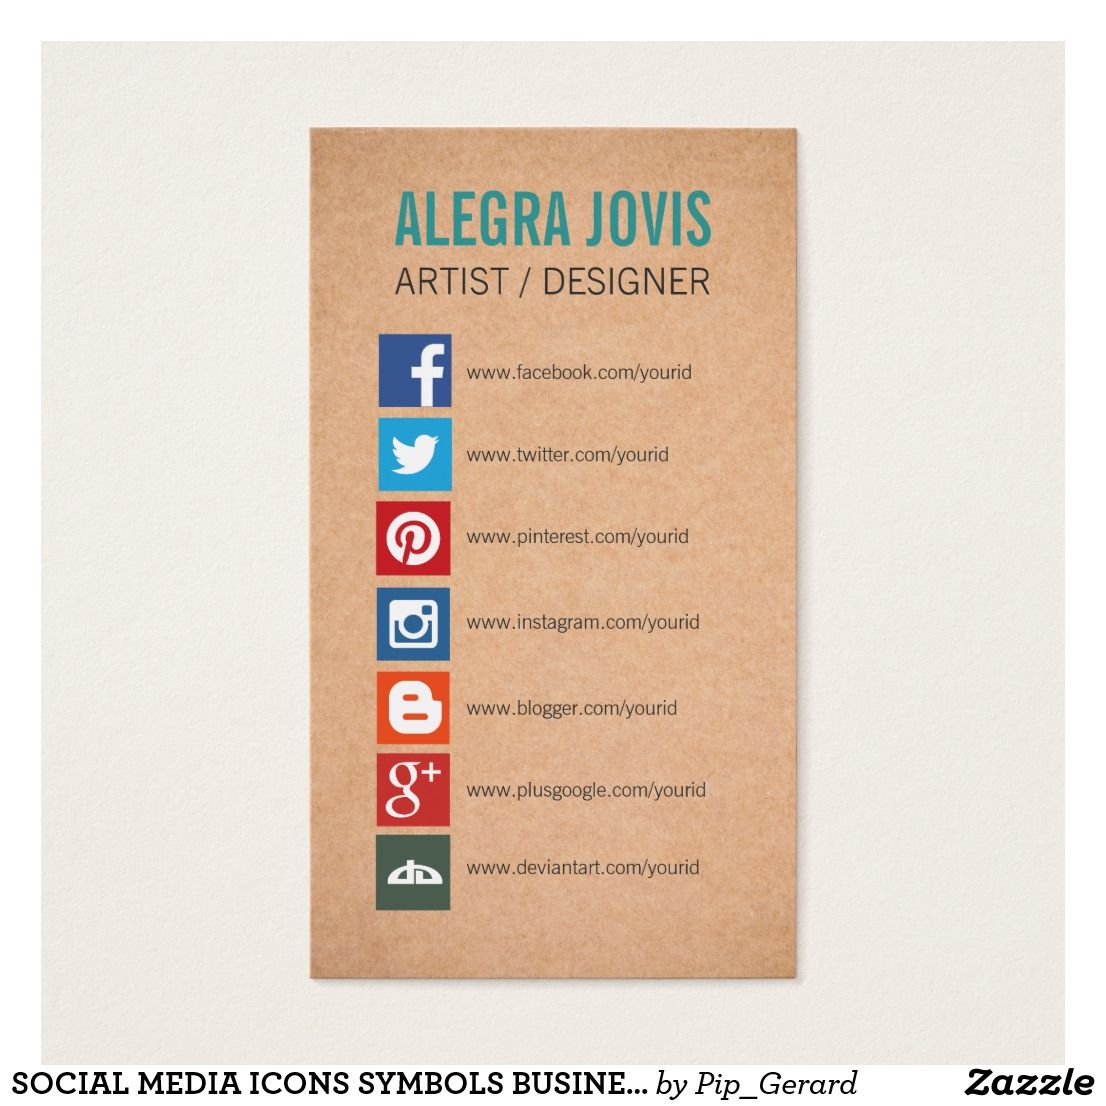 Social media icons symbols business card | Pinterest | Social media ...